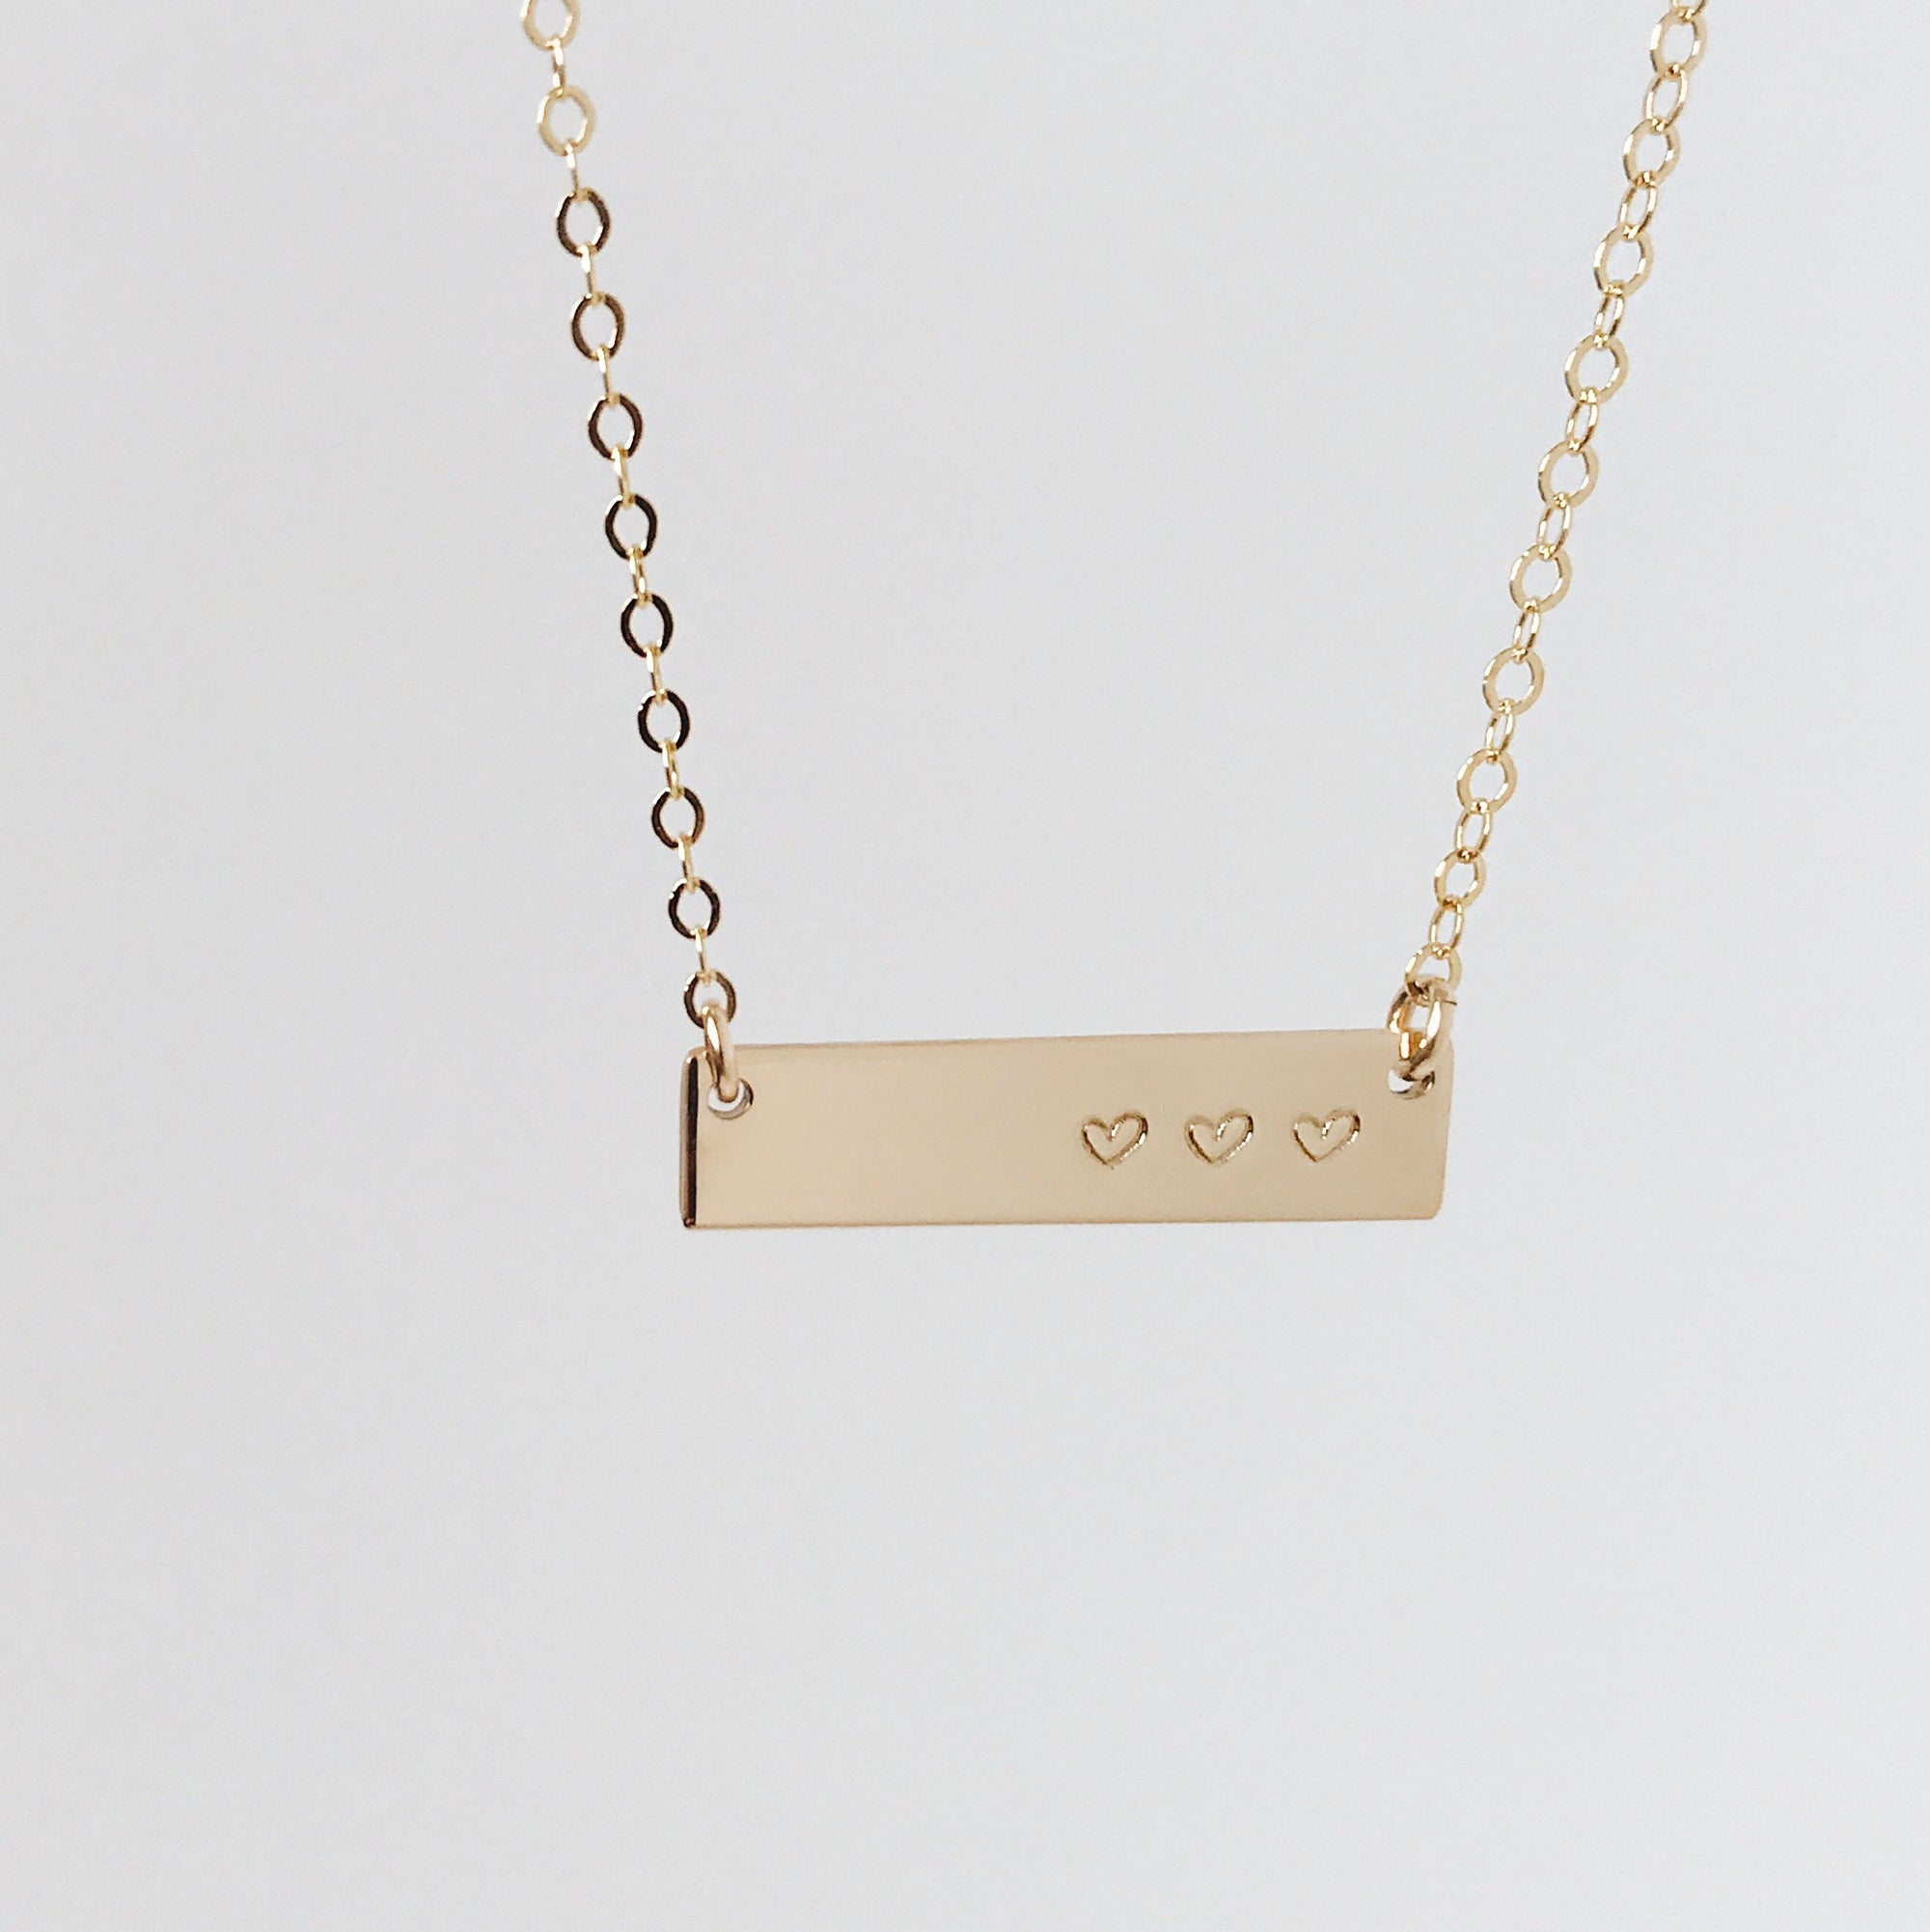 gold c necklaces s women nordstrom necklace bar mini